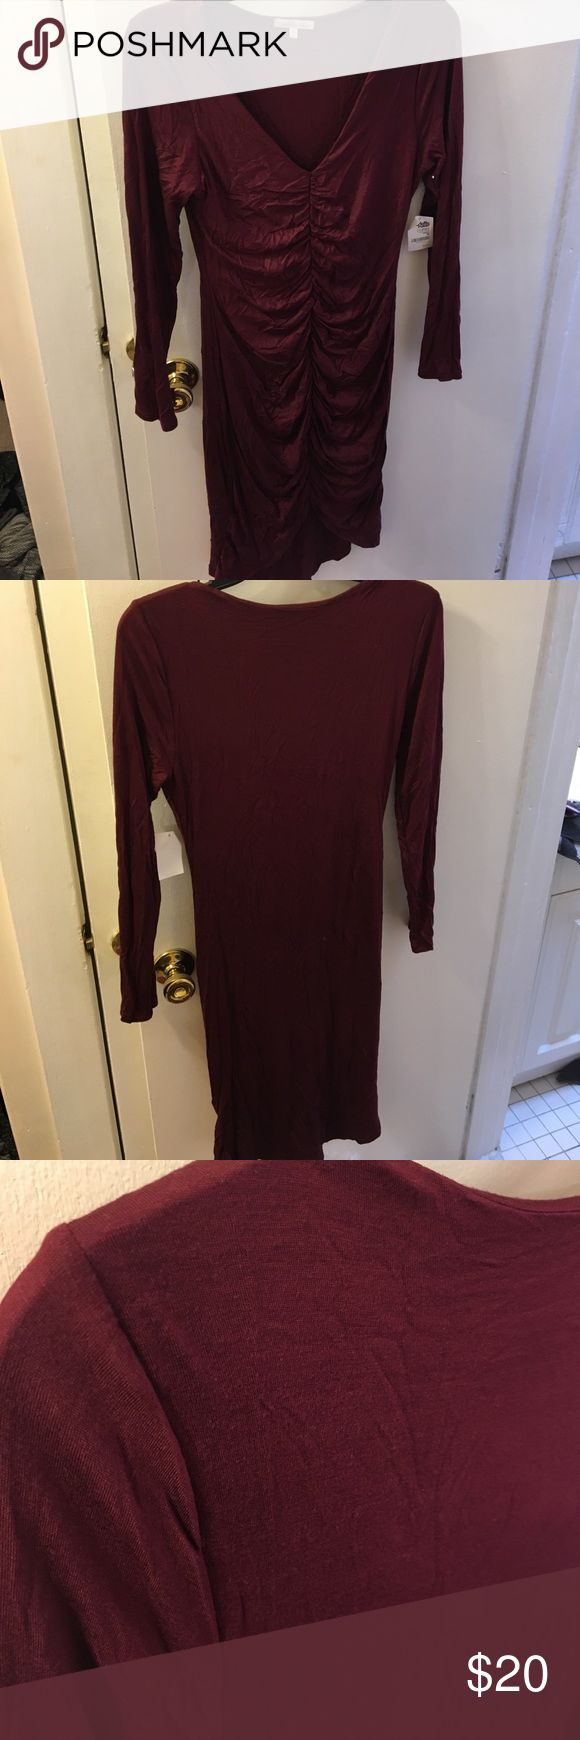 Charlotte Russe Maroon Ruched Fitted Dress Maroon ruched fitted dress. Comes up in the front and power in back. Tight fitting. Charlotte Russe Dresses Long Sleeve